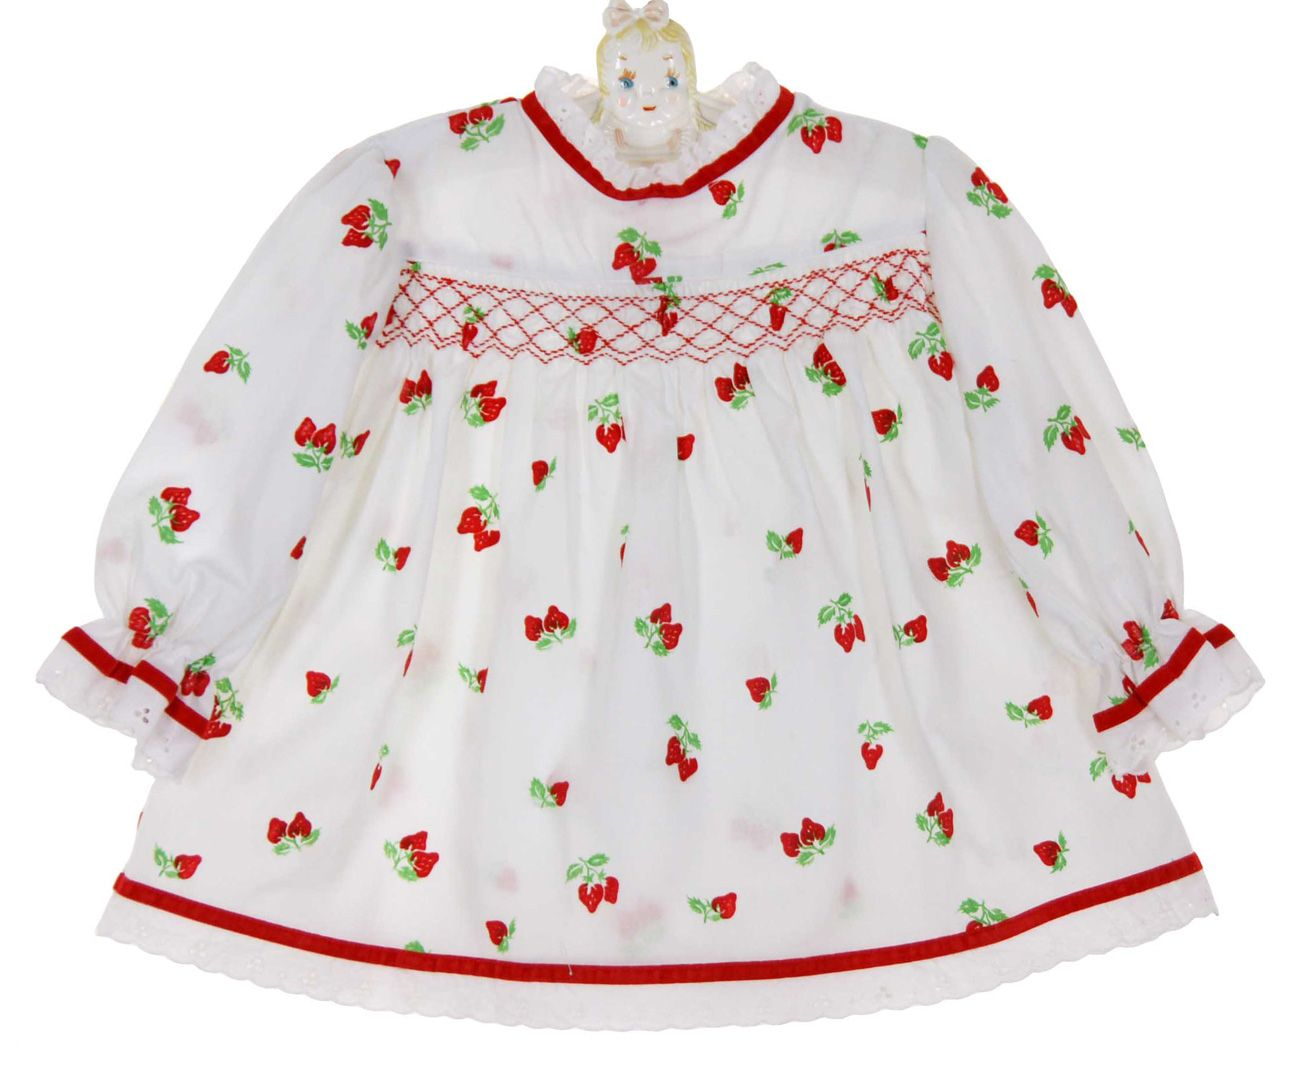 ce8a570da Vintage 1960s Polly Flinders White Smocked Dress with Red Flocked  Strawberries $50.00